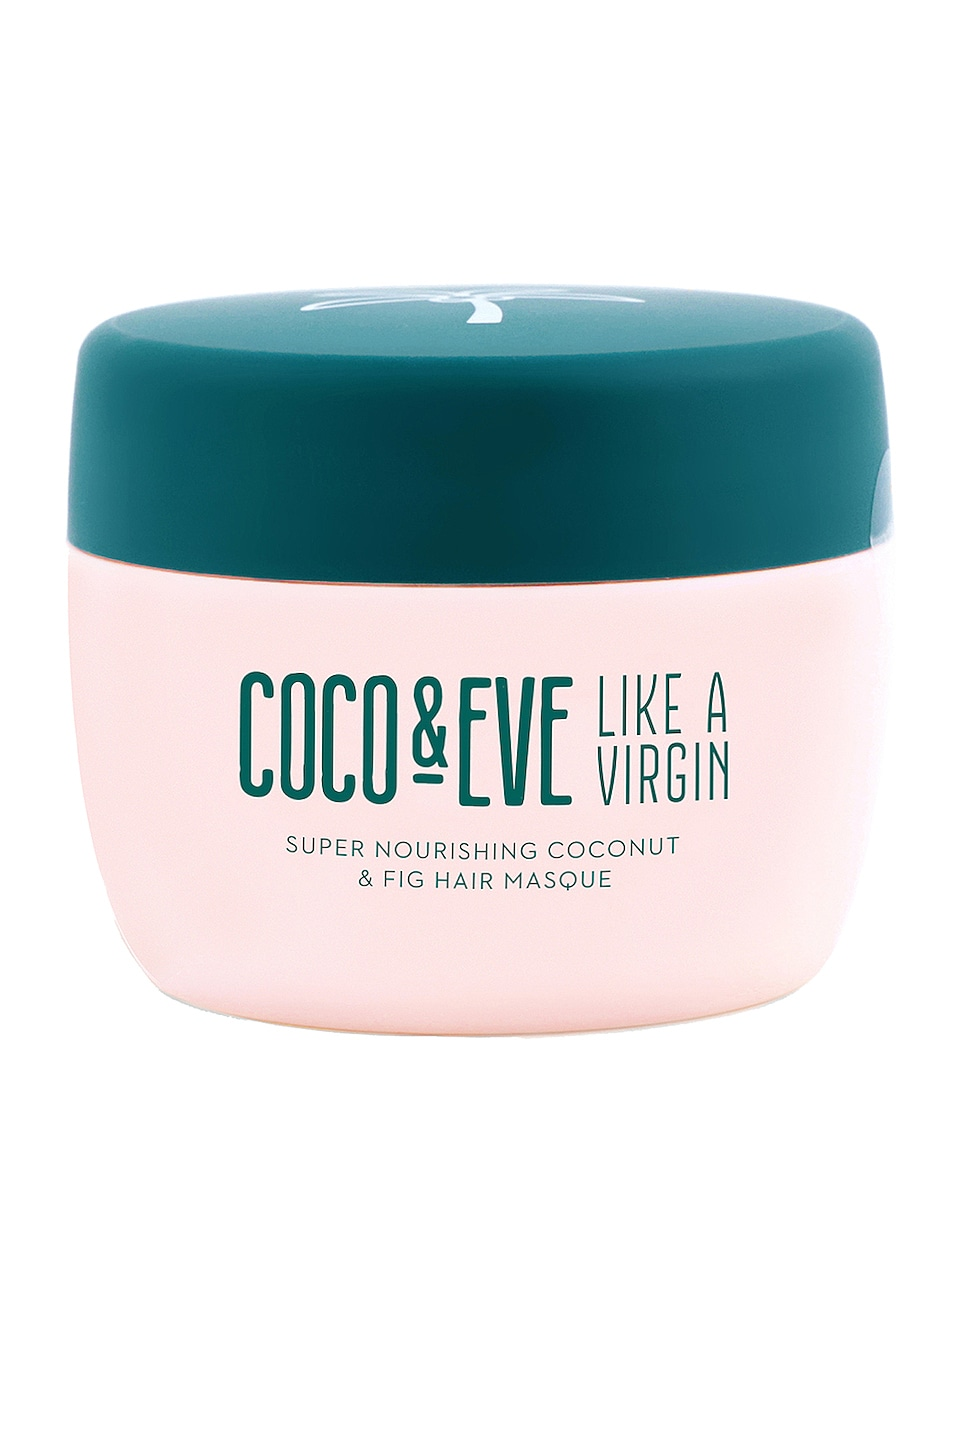 Coco & Eve SUPER NOURISHING 헤어 마스크